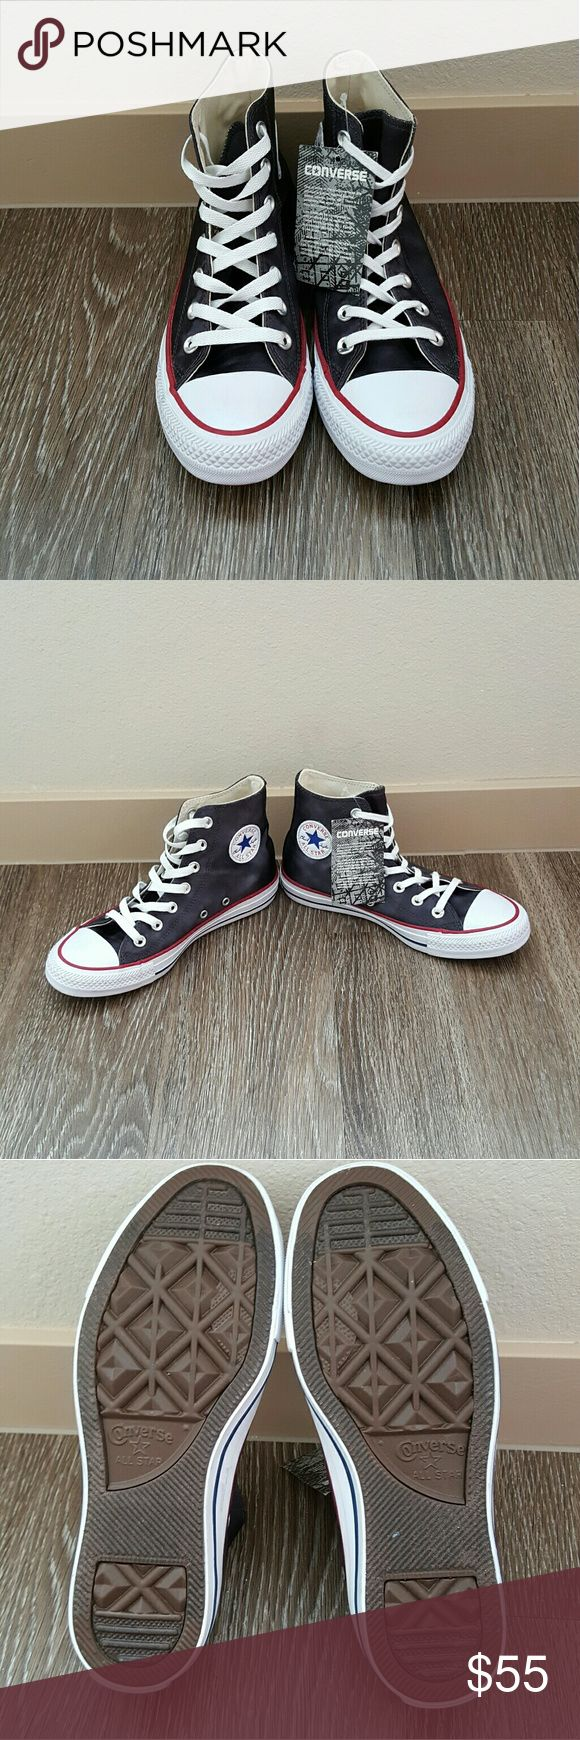 1 HOUR SALE!! Nwt Converse black sheen high top NWT Converse black sheen high top sneakers size 6 please look at pics for color details. No trades please dont ask! No box included Converse Shoes Sneakers